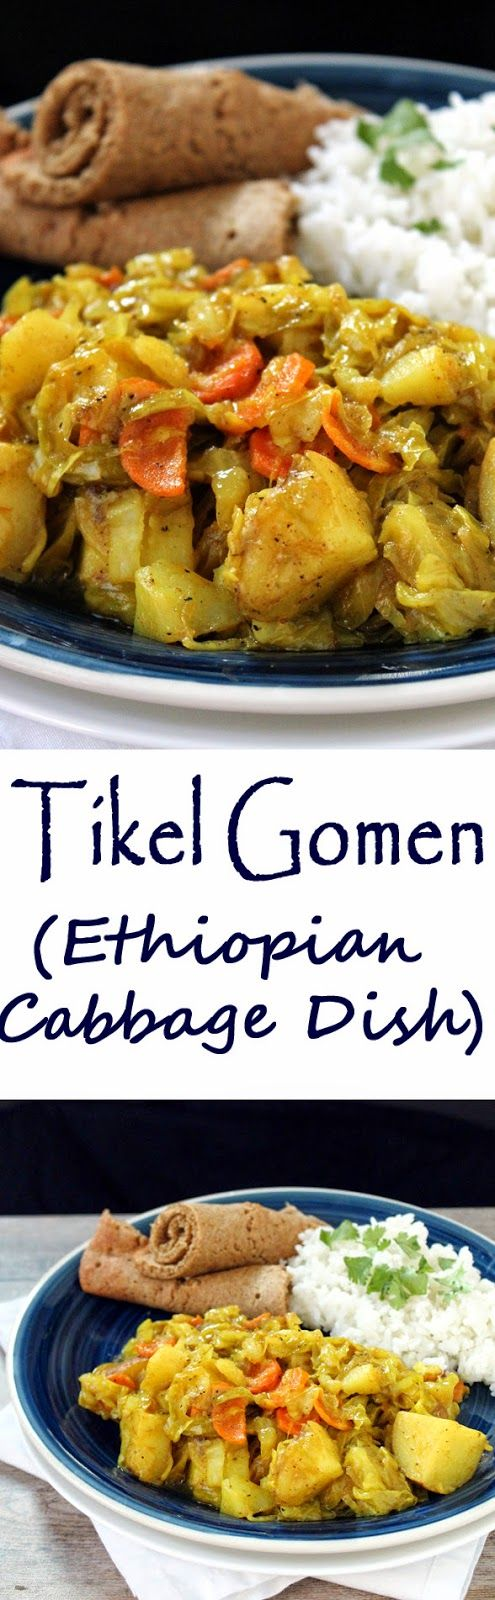 Tikel Gomen : Ethiopian Cabbage Dish | The Stay At Home Chef